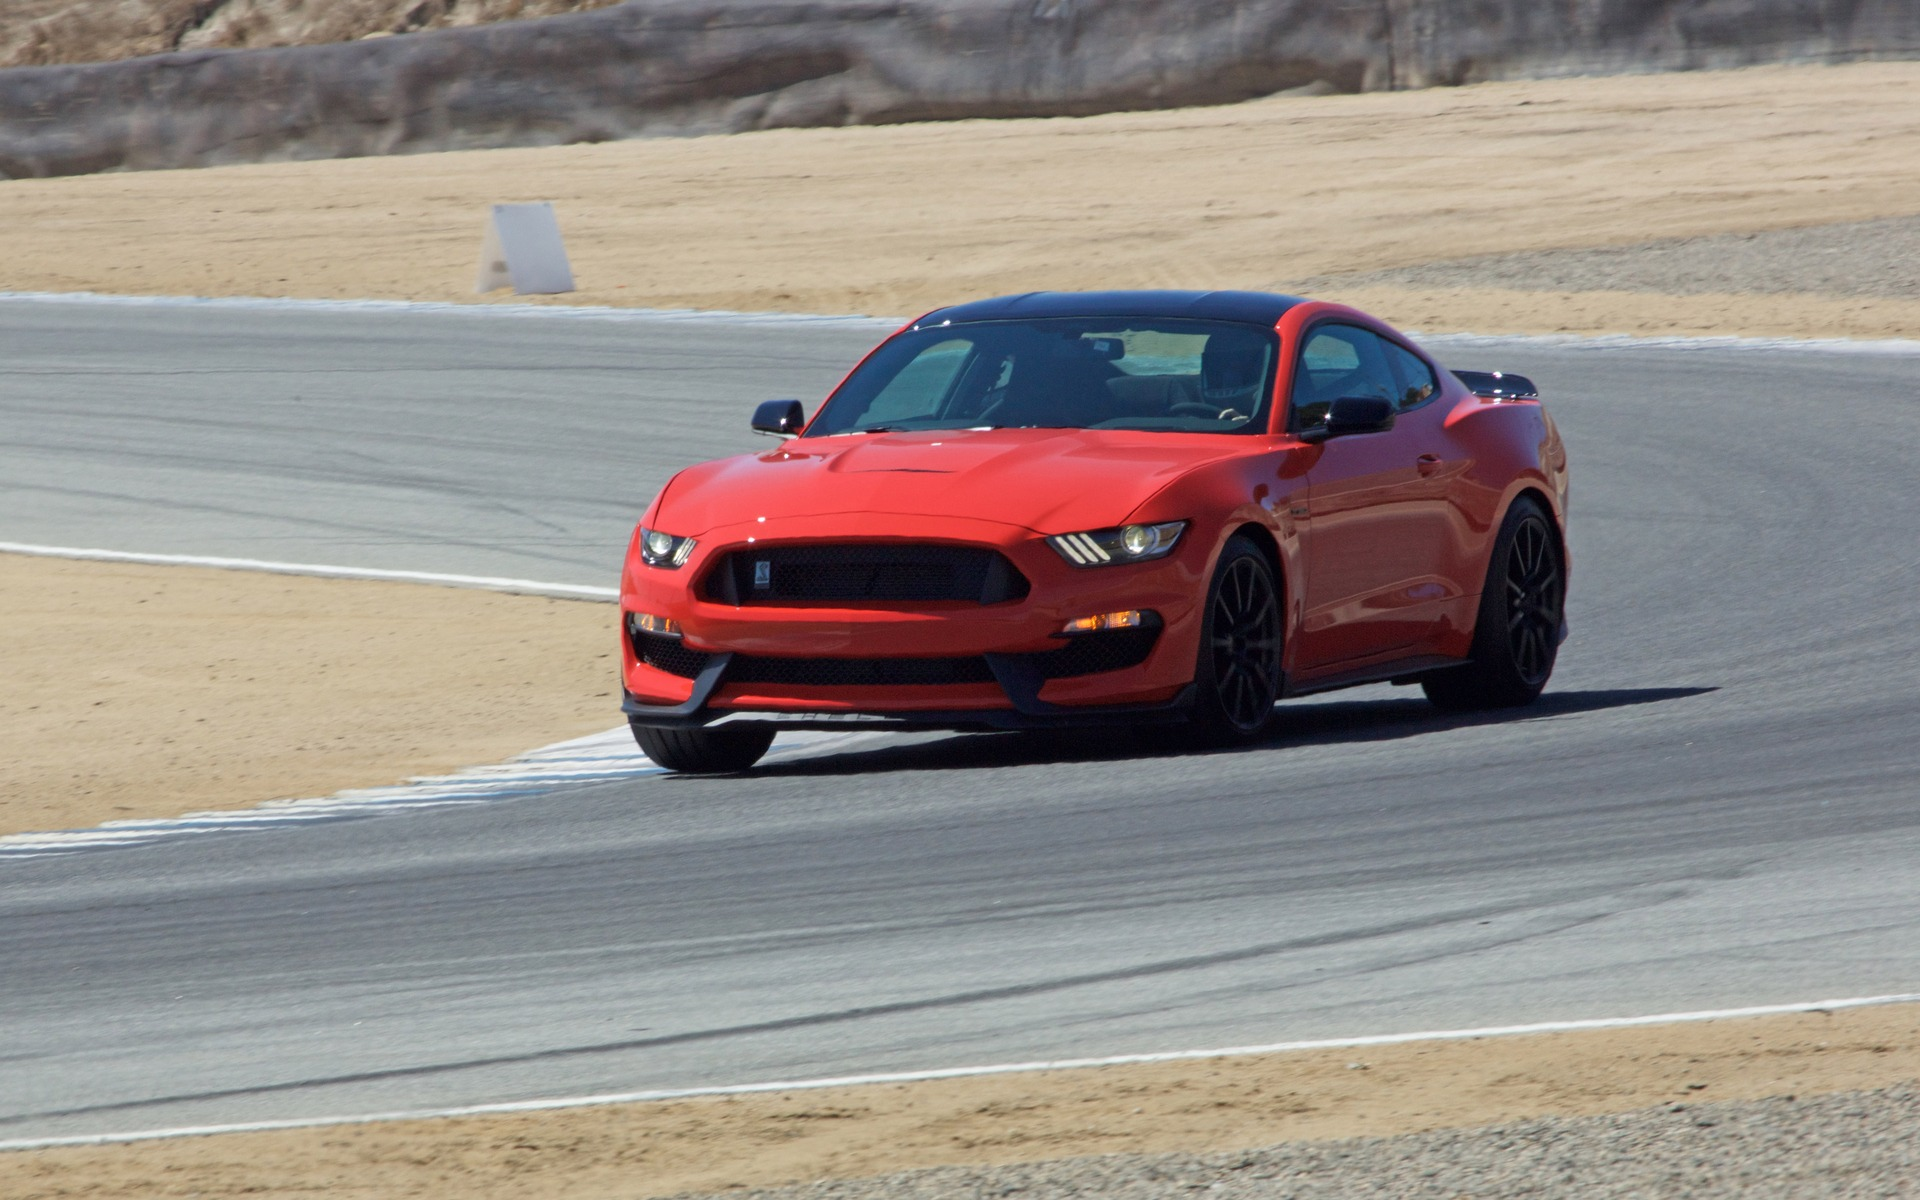 Ford Mustang Shelby GT350 - In action at the Laguna Seca track.